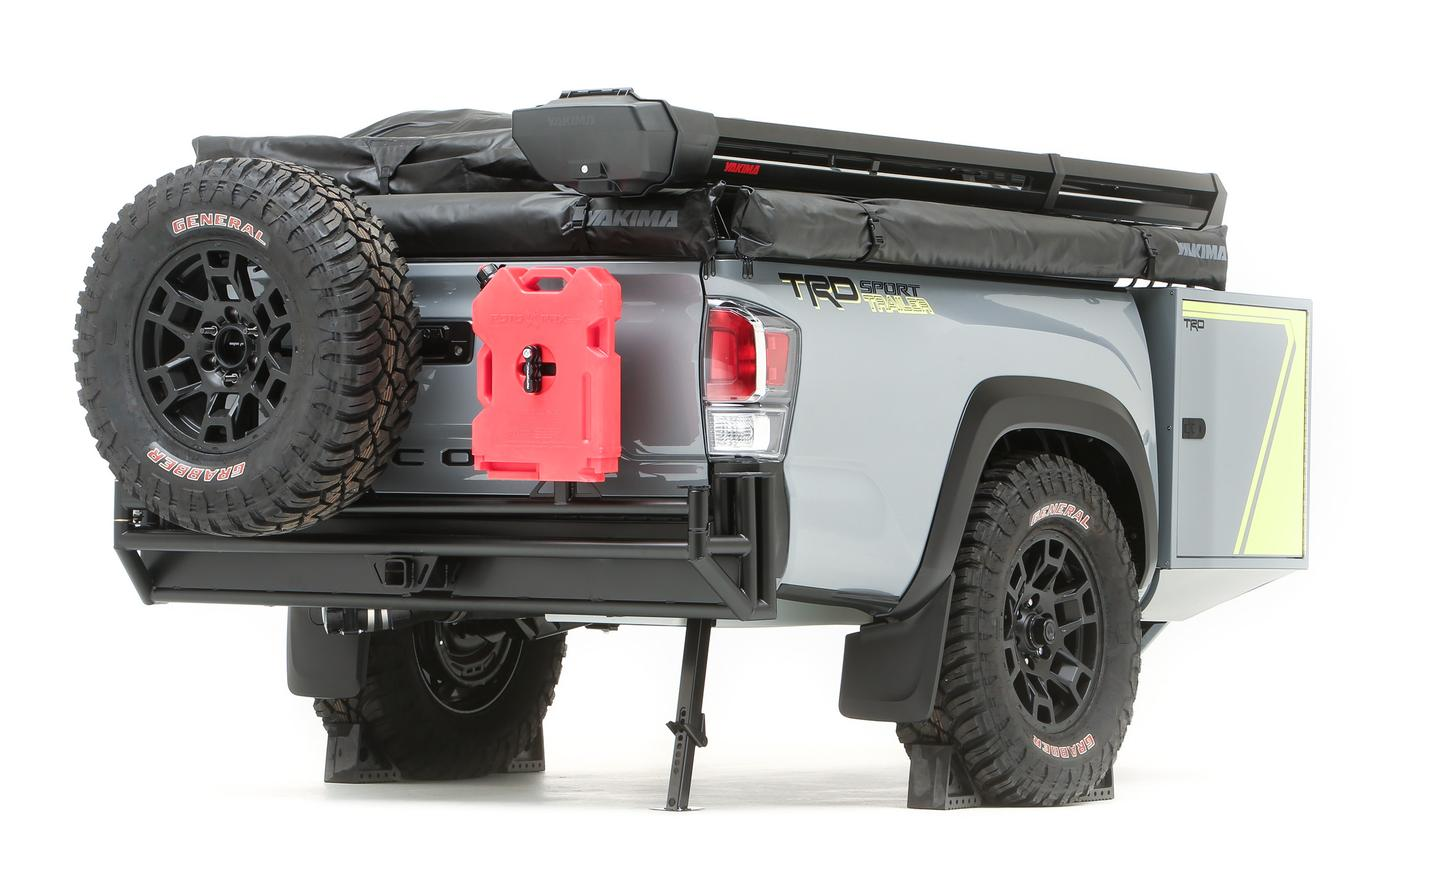 The TRD-Sport trailer includes a swing-away rear tire holder and mounted fuel canister